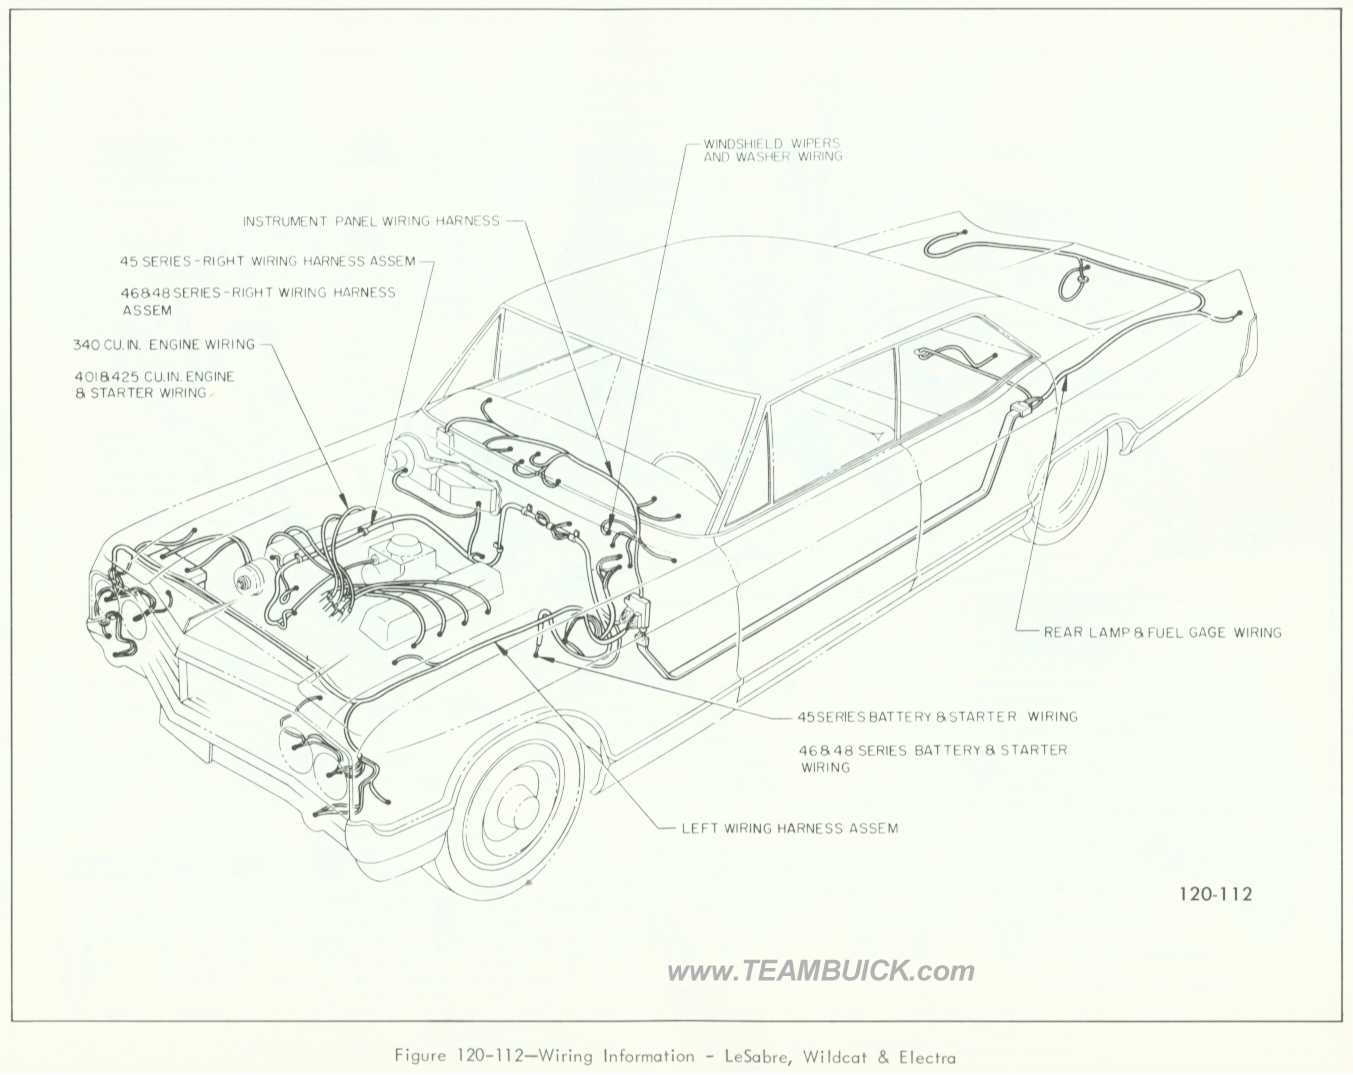 1966 buick wildcat wiring diagram 2005 pt cruiser stereo lesabre and electra information